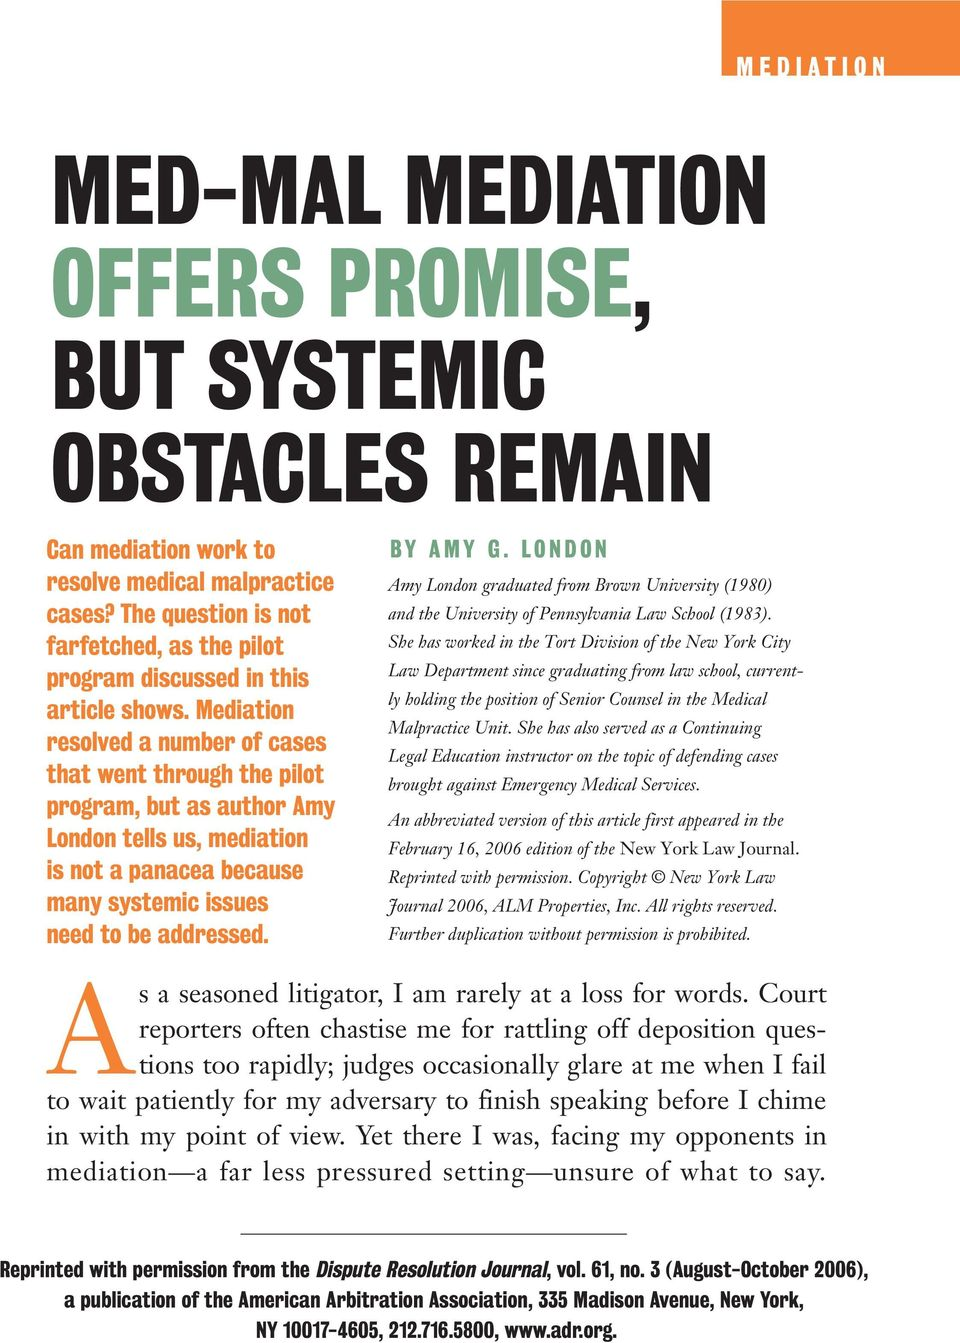 Mediation resolved a number of cases that went through the pilot program, but as author Amy London tells us, mediation is not a panacea because many systemic issues need to be addressed. BY AMY G.